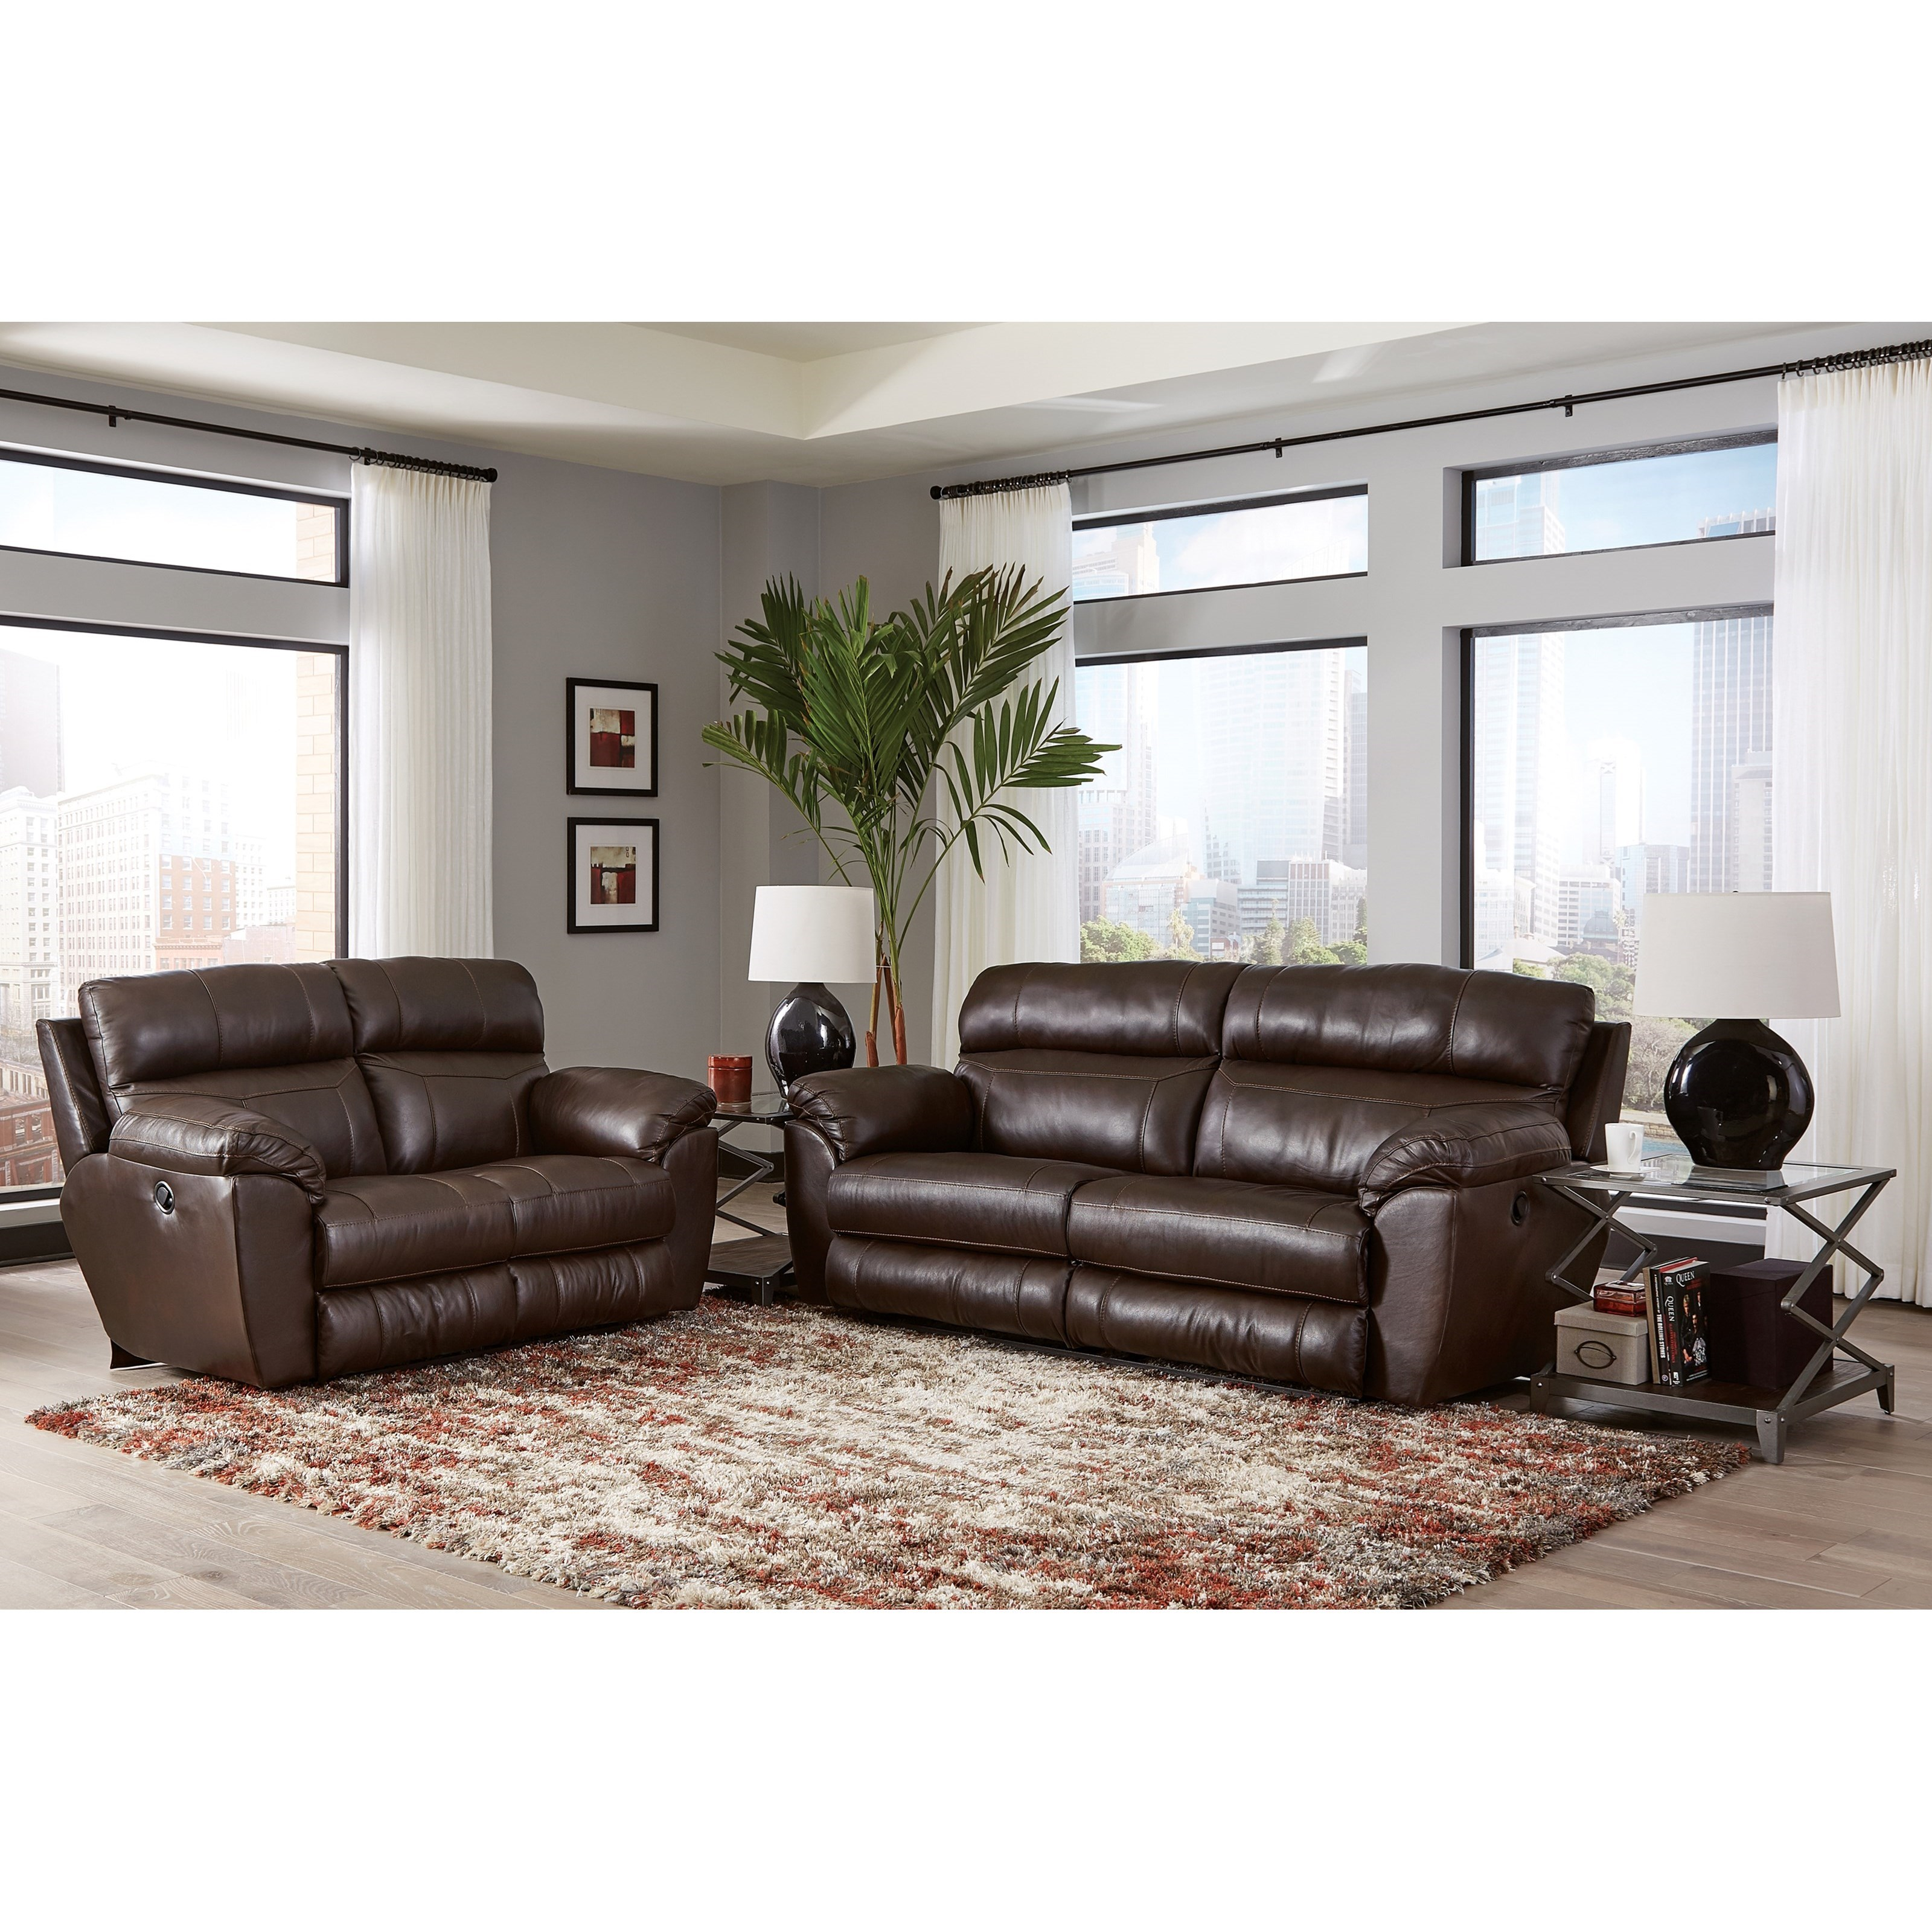 Costa Reclining Living Room Group by Catnapper at Gill Brothers Furniture